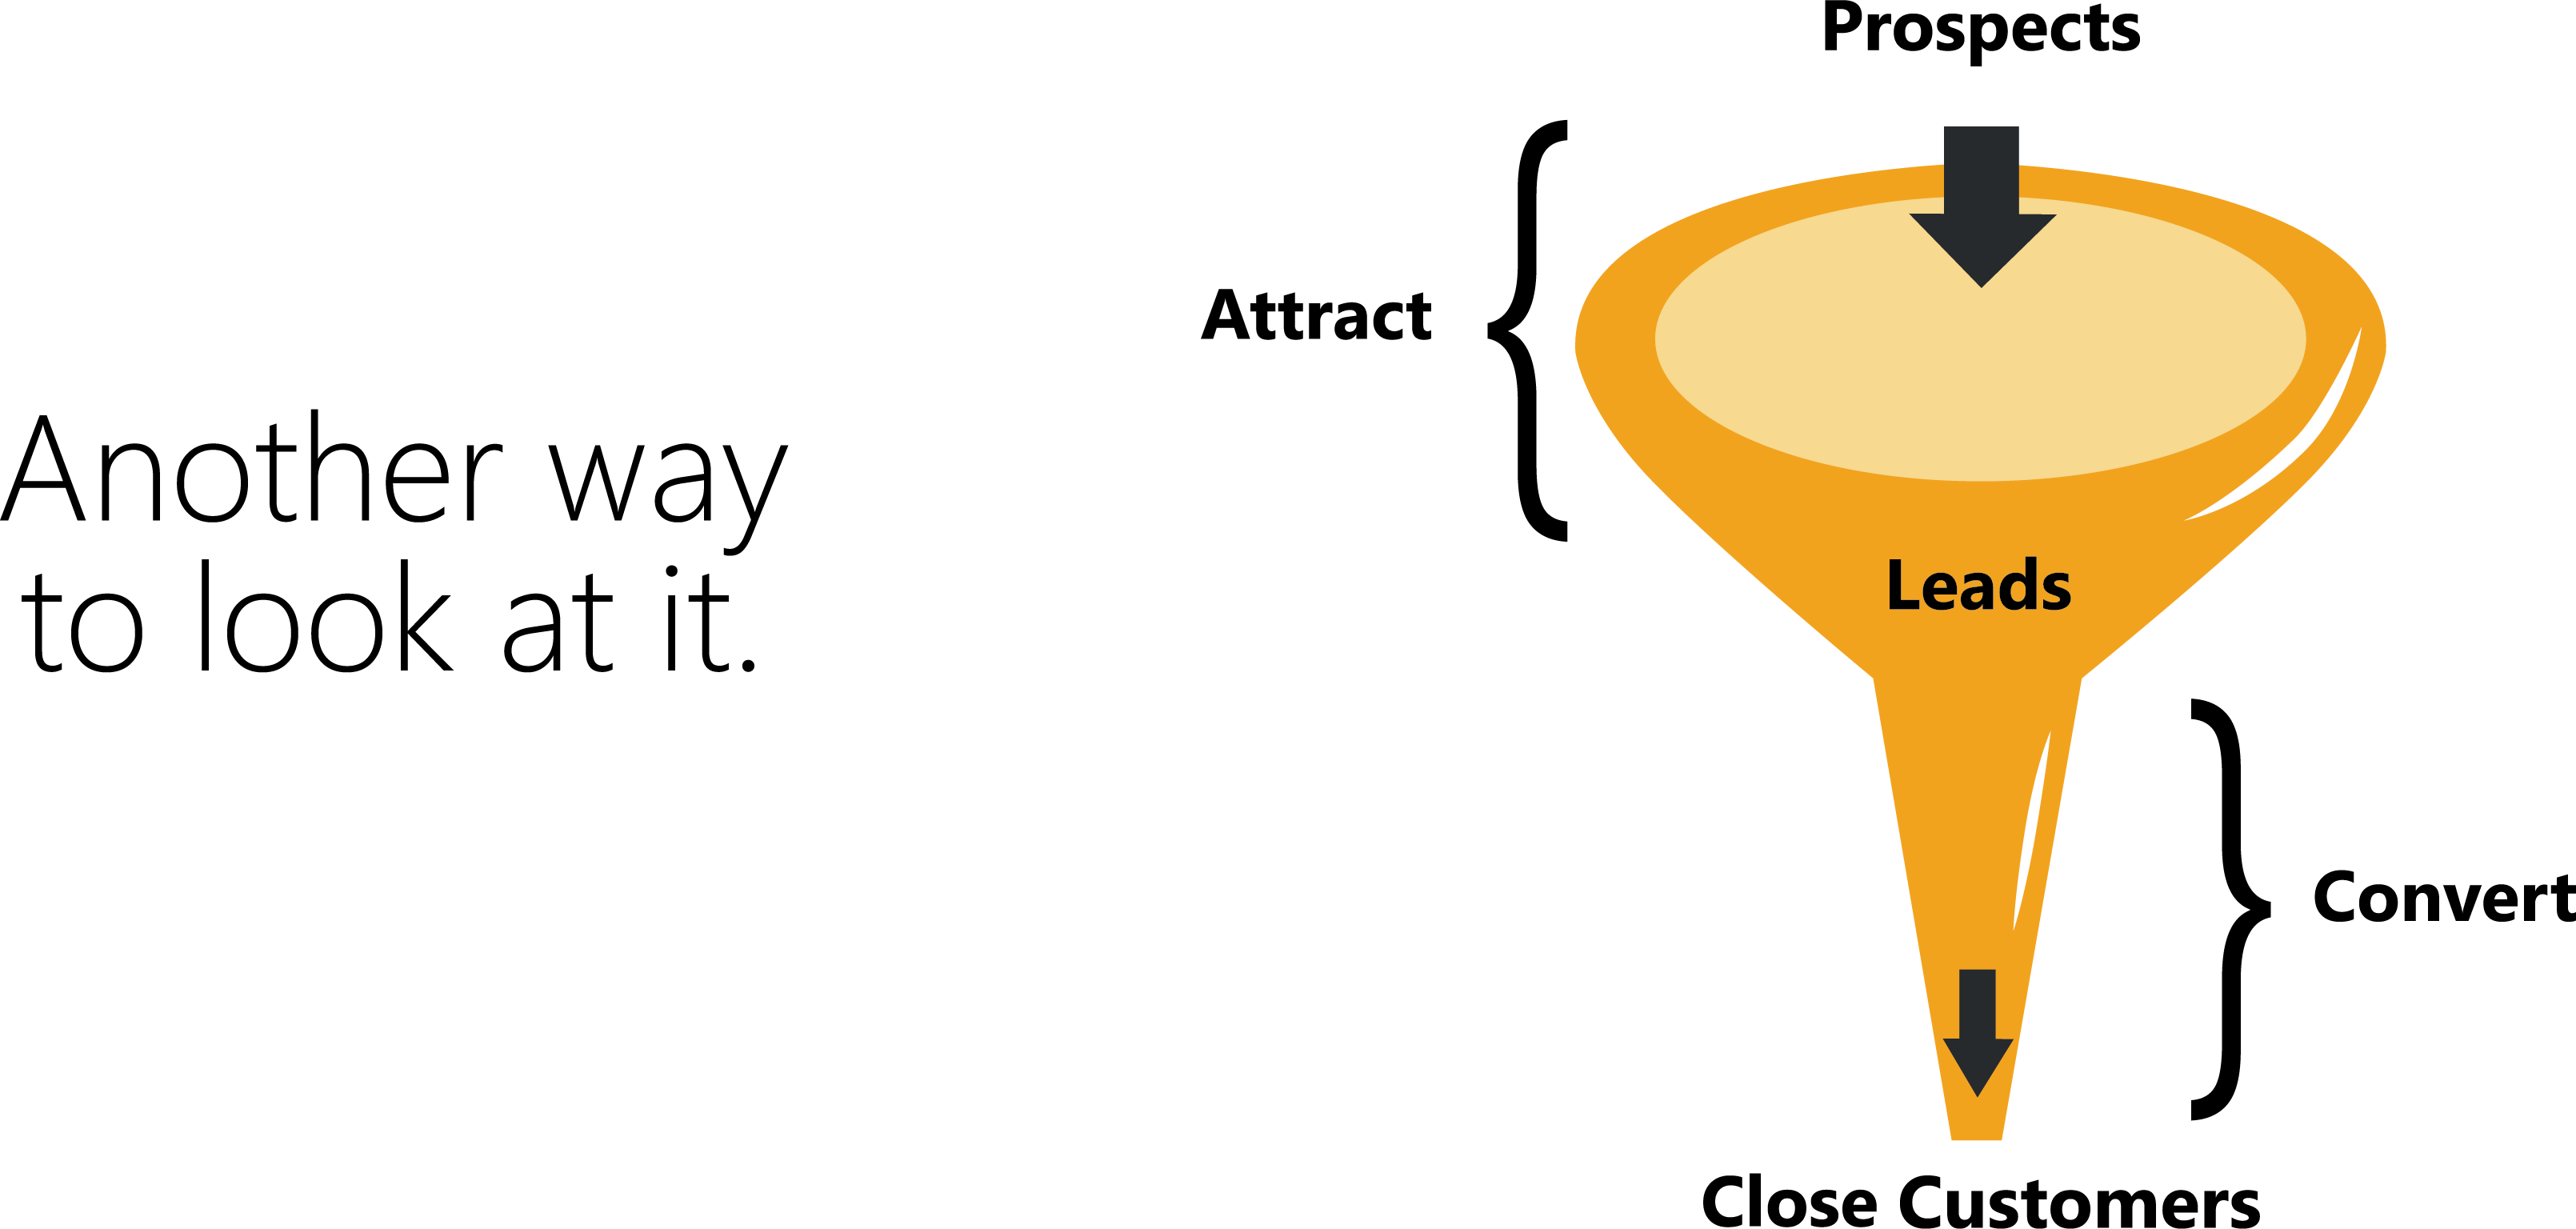 Another Way to View Inbound Marketing_Attract-Convert-Close Funnel